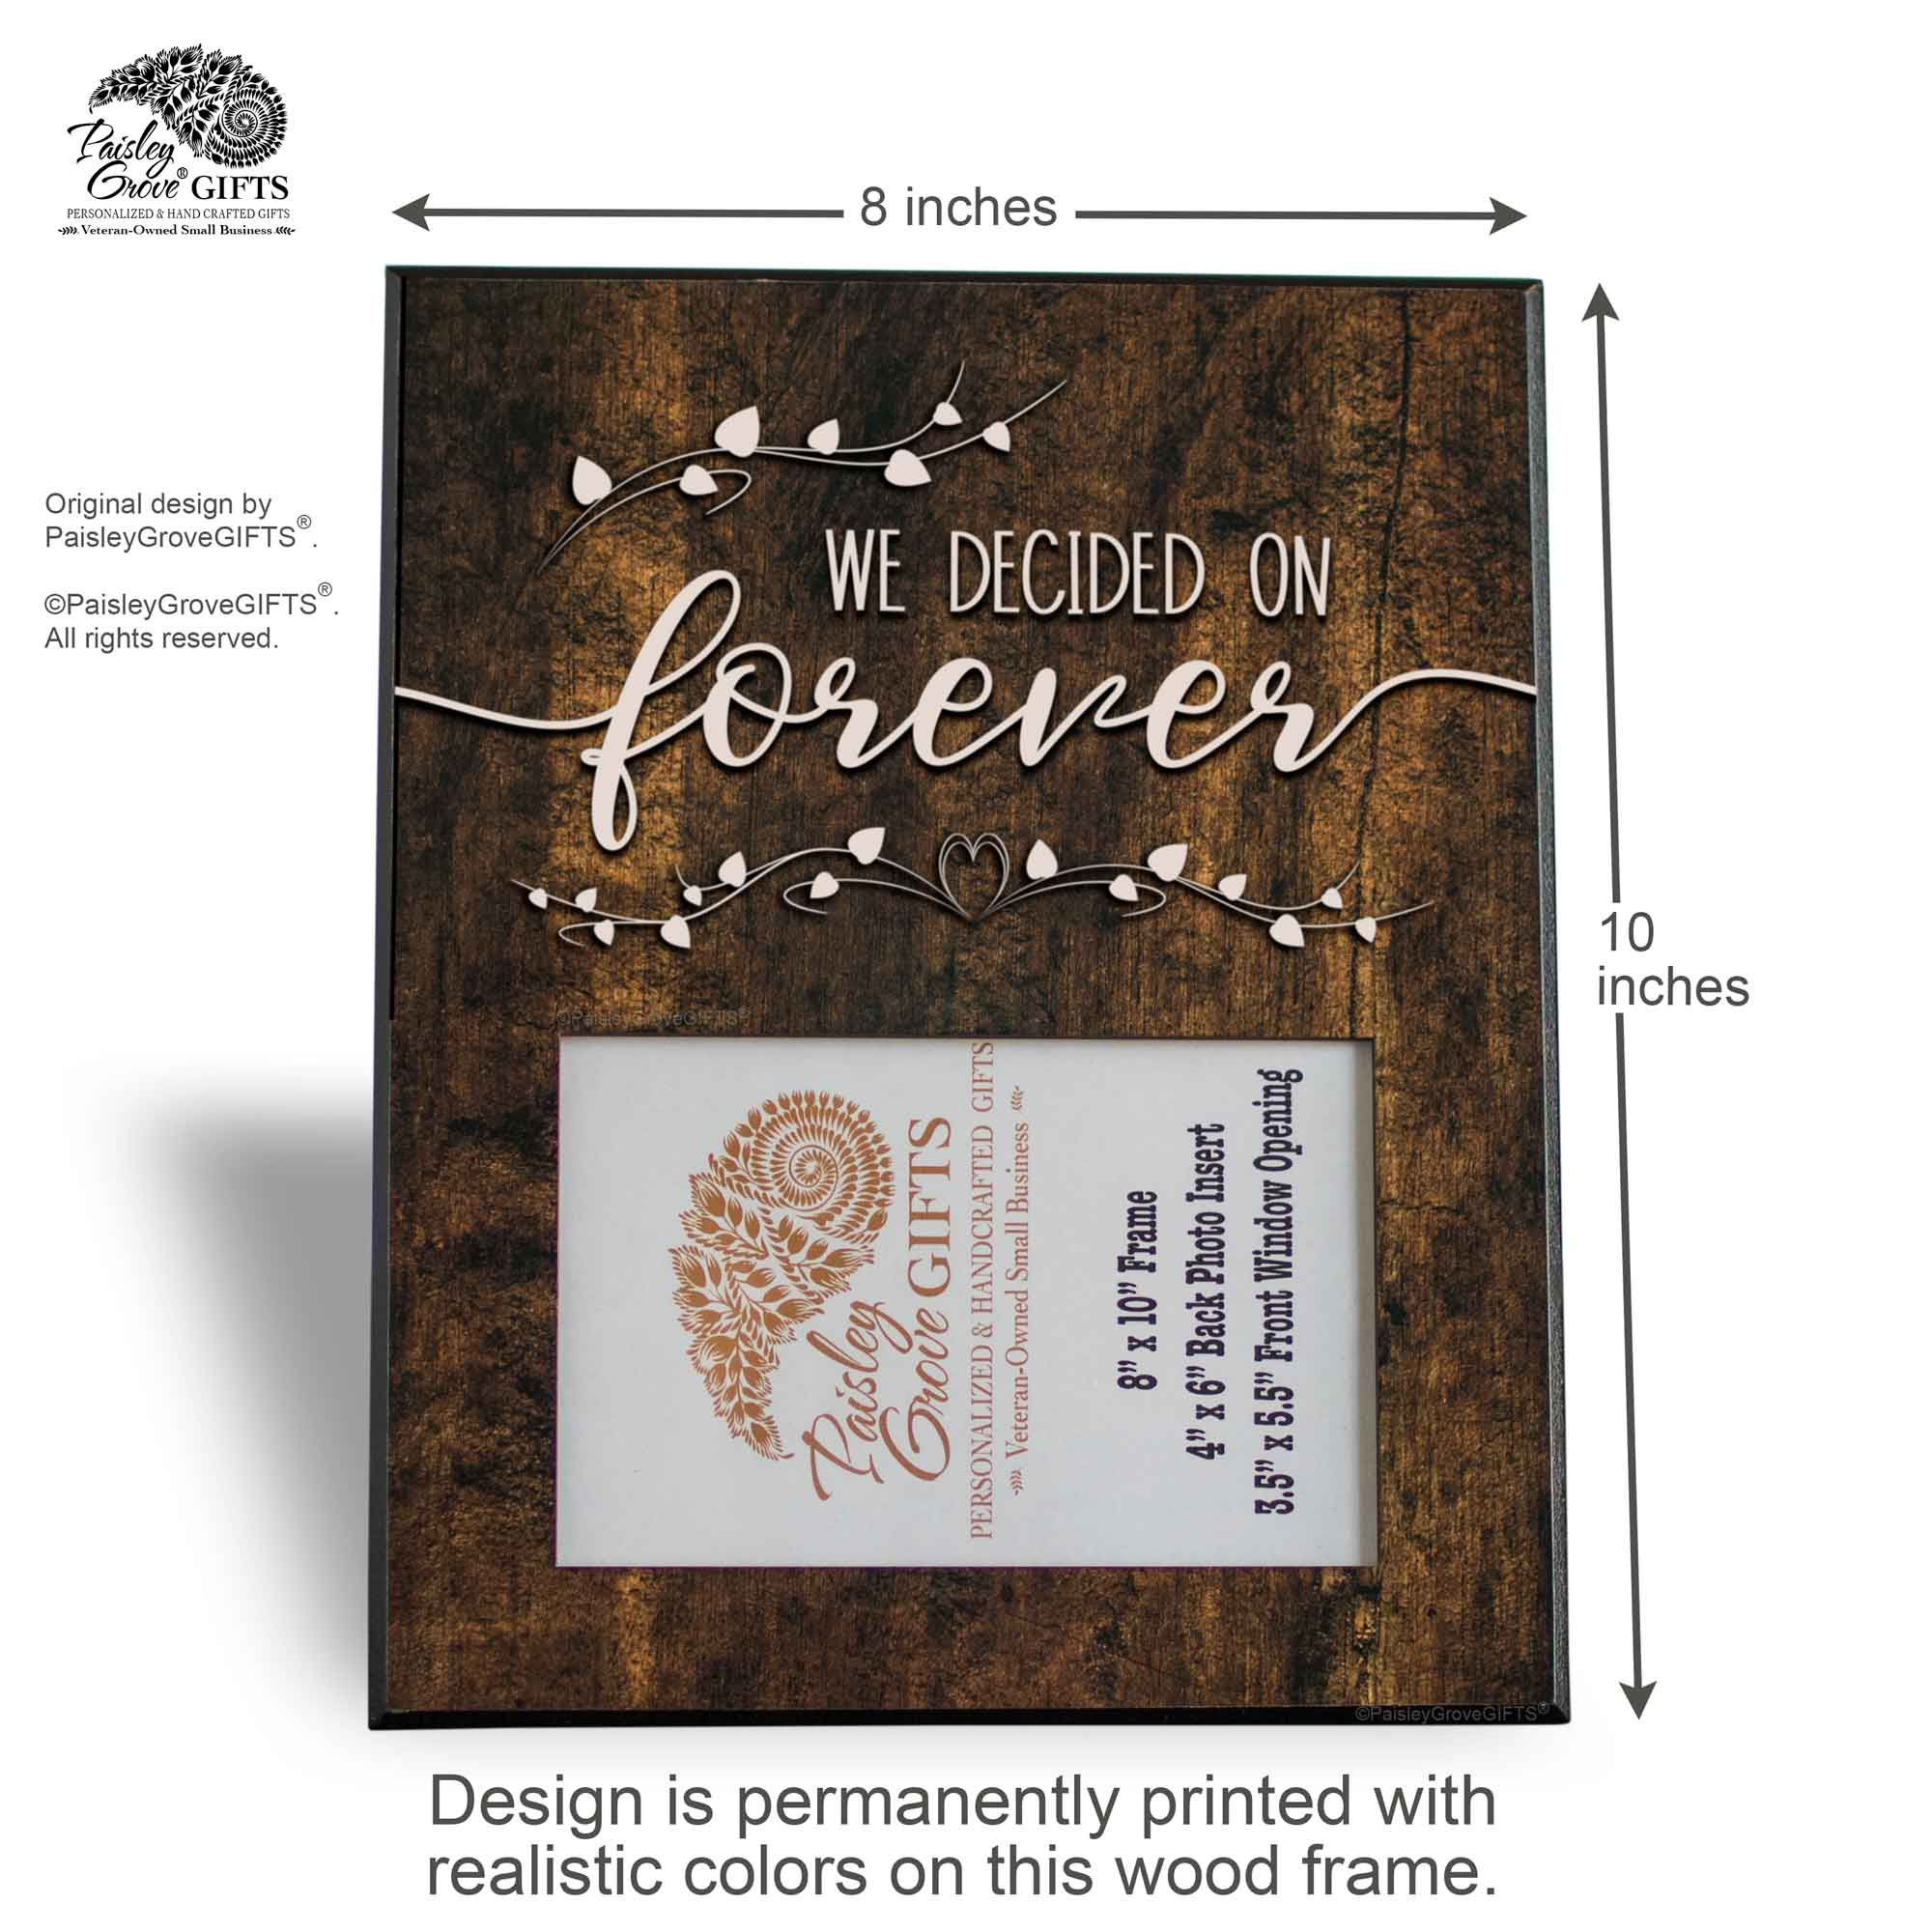 CopyrightPaisleyGroveGIFTS S240b Measurements and Design Information for Just Engaged and Wedding Frame for Her